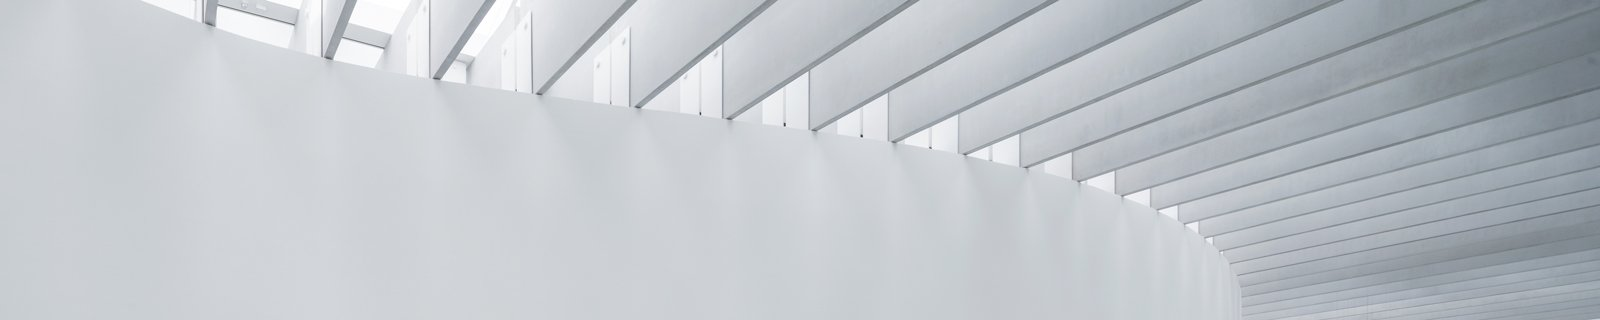 Light diffusing skylights in the Contemporary Art + Design Wing.